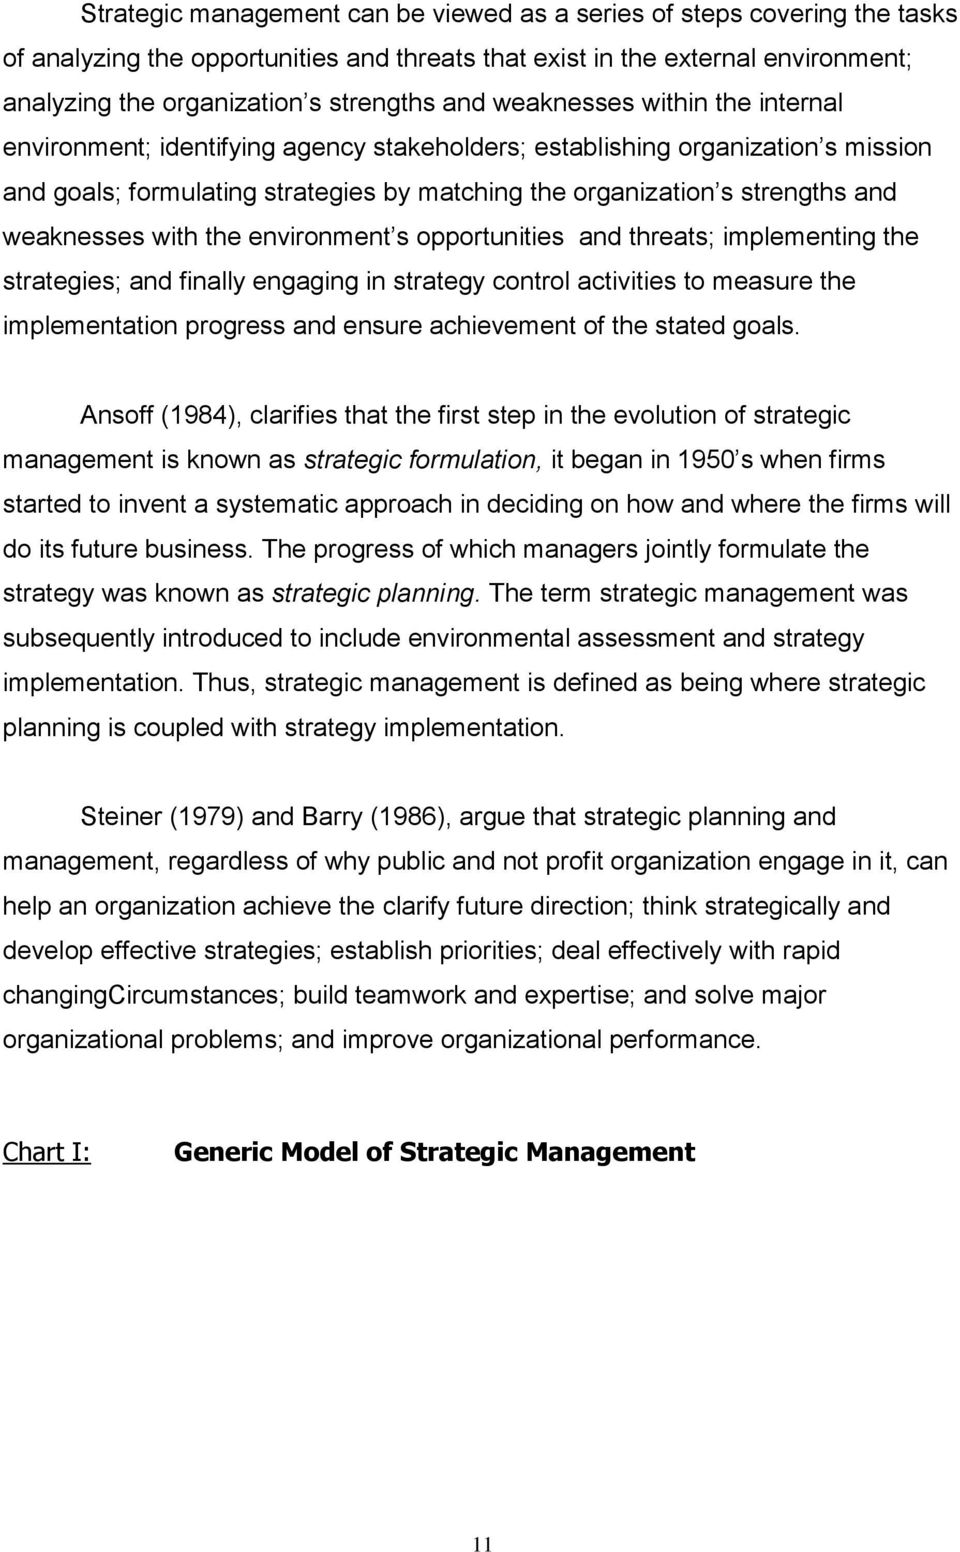 weaknesses with the environment s opportunities and threats; implementing the strategies; and finally engaging in strategy control activities to measure the implementation progress and ensure